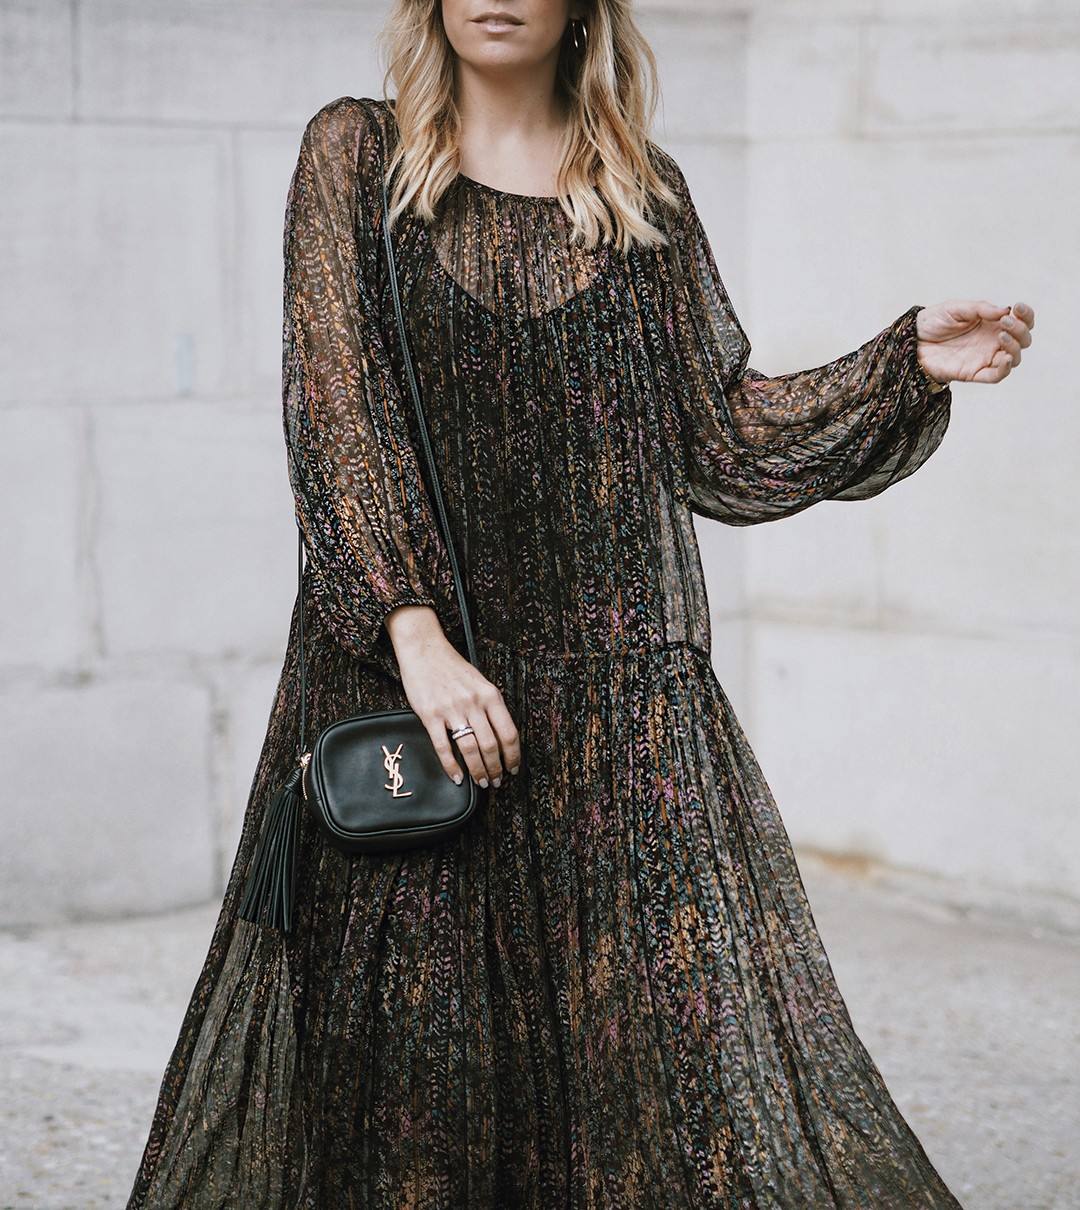 long-sleeve-dress-fashion-blogger